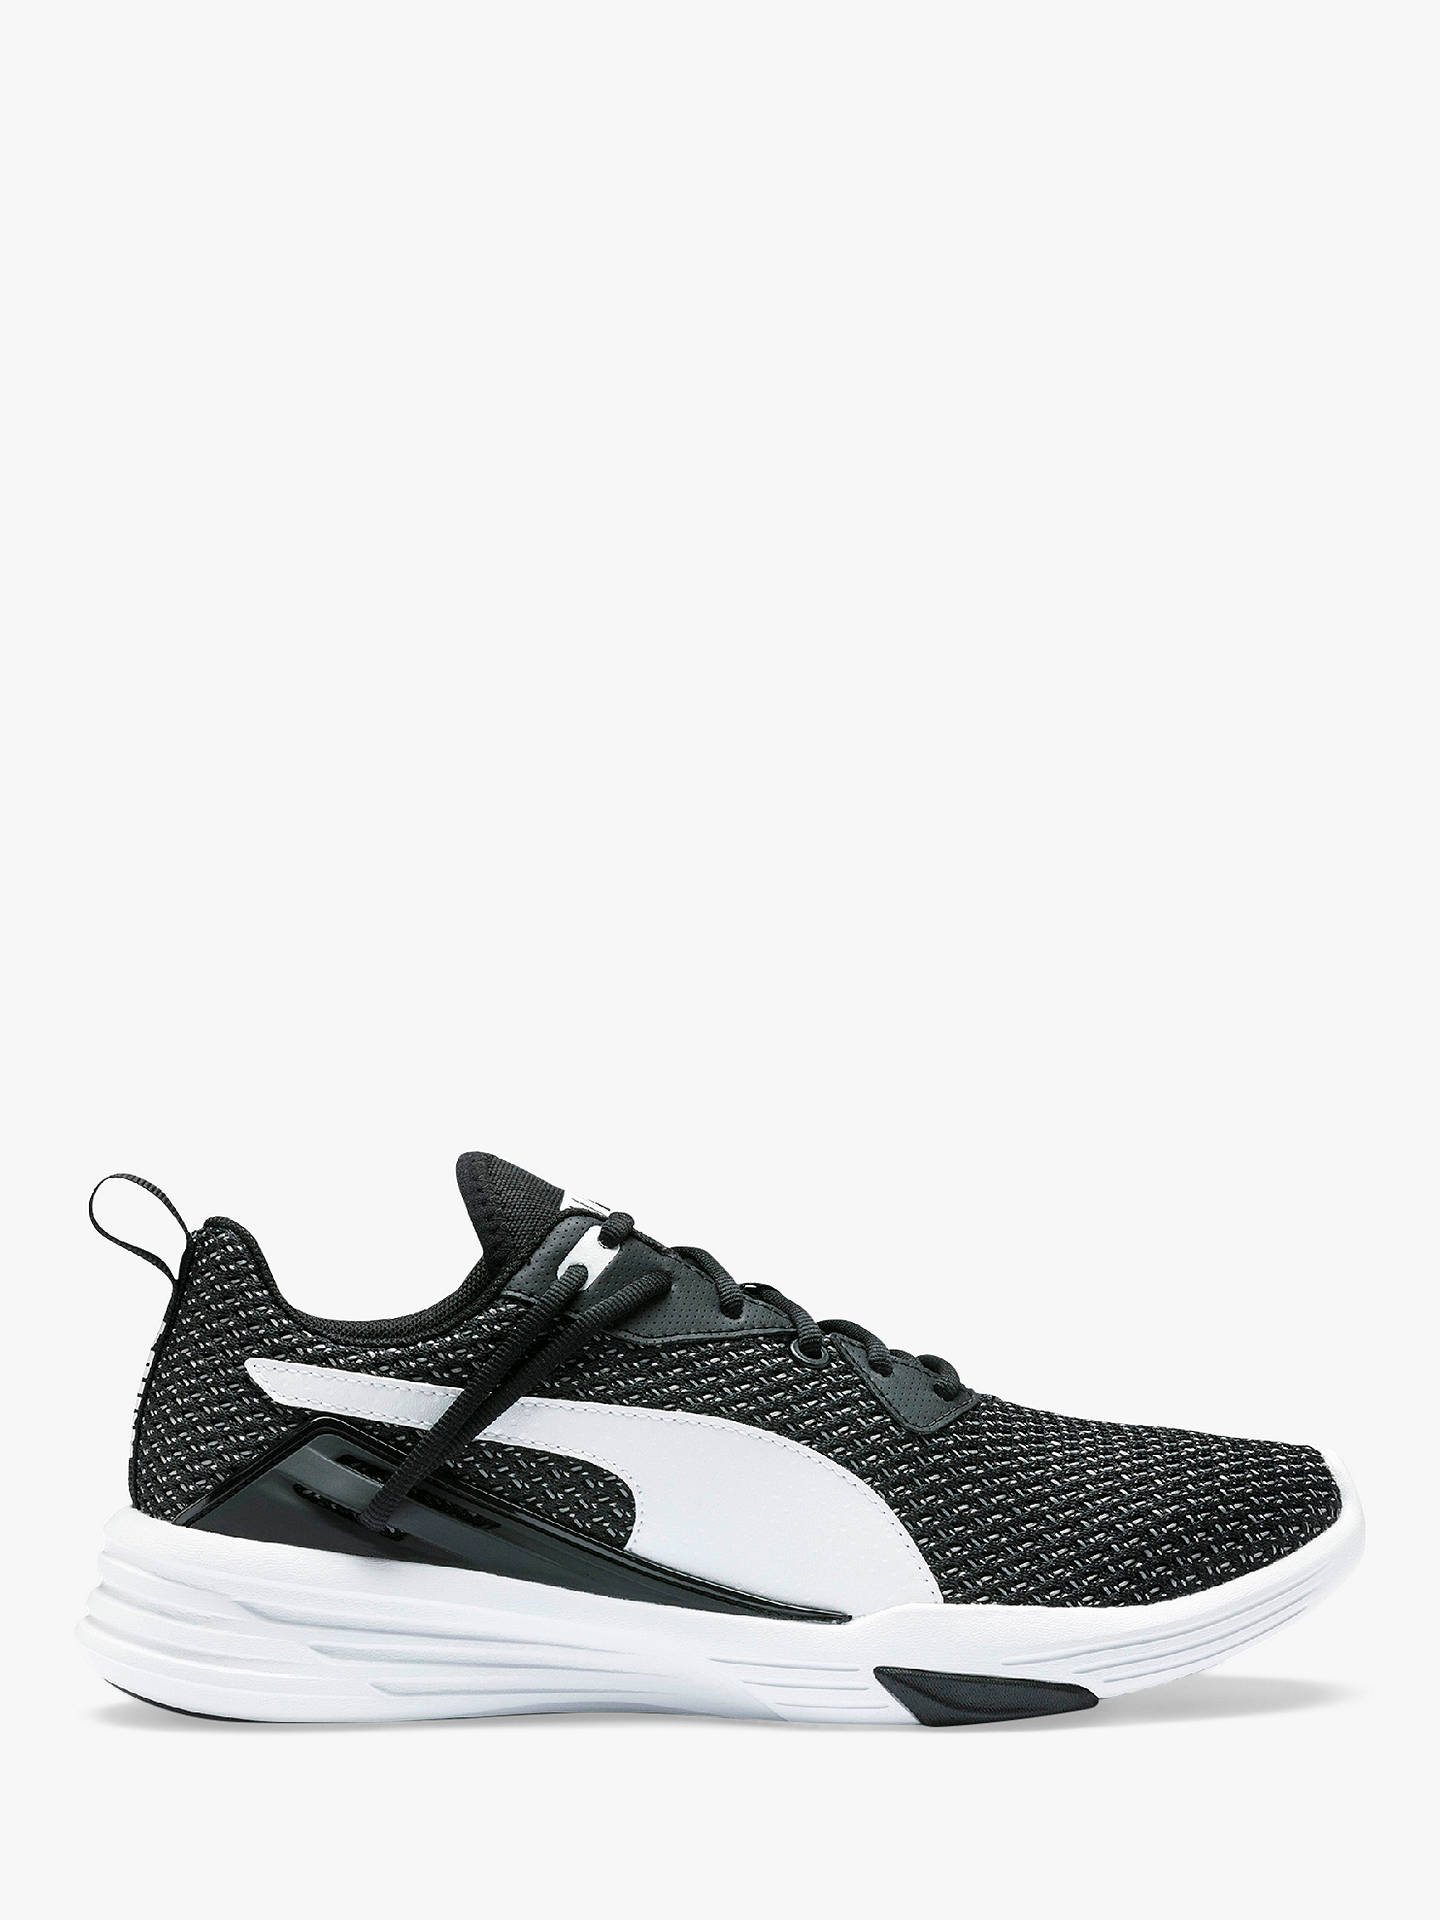 Buy Puma Xt S White Shoes Online | FOOTWAY.co.uk